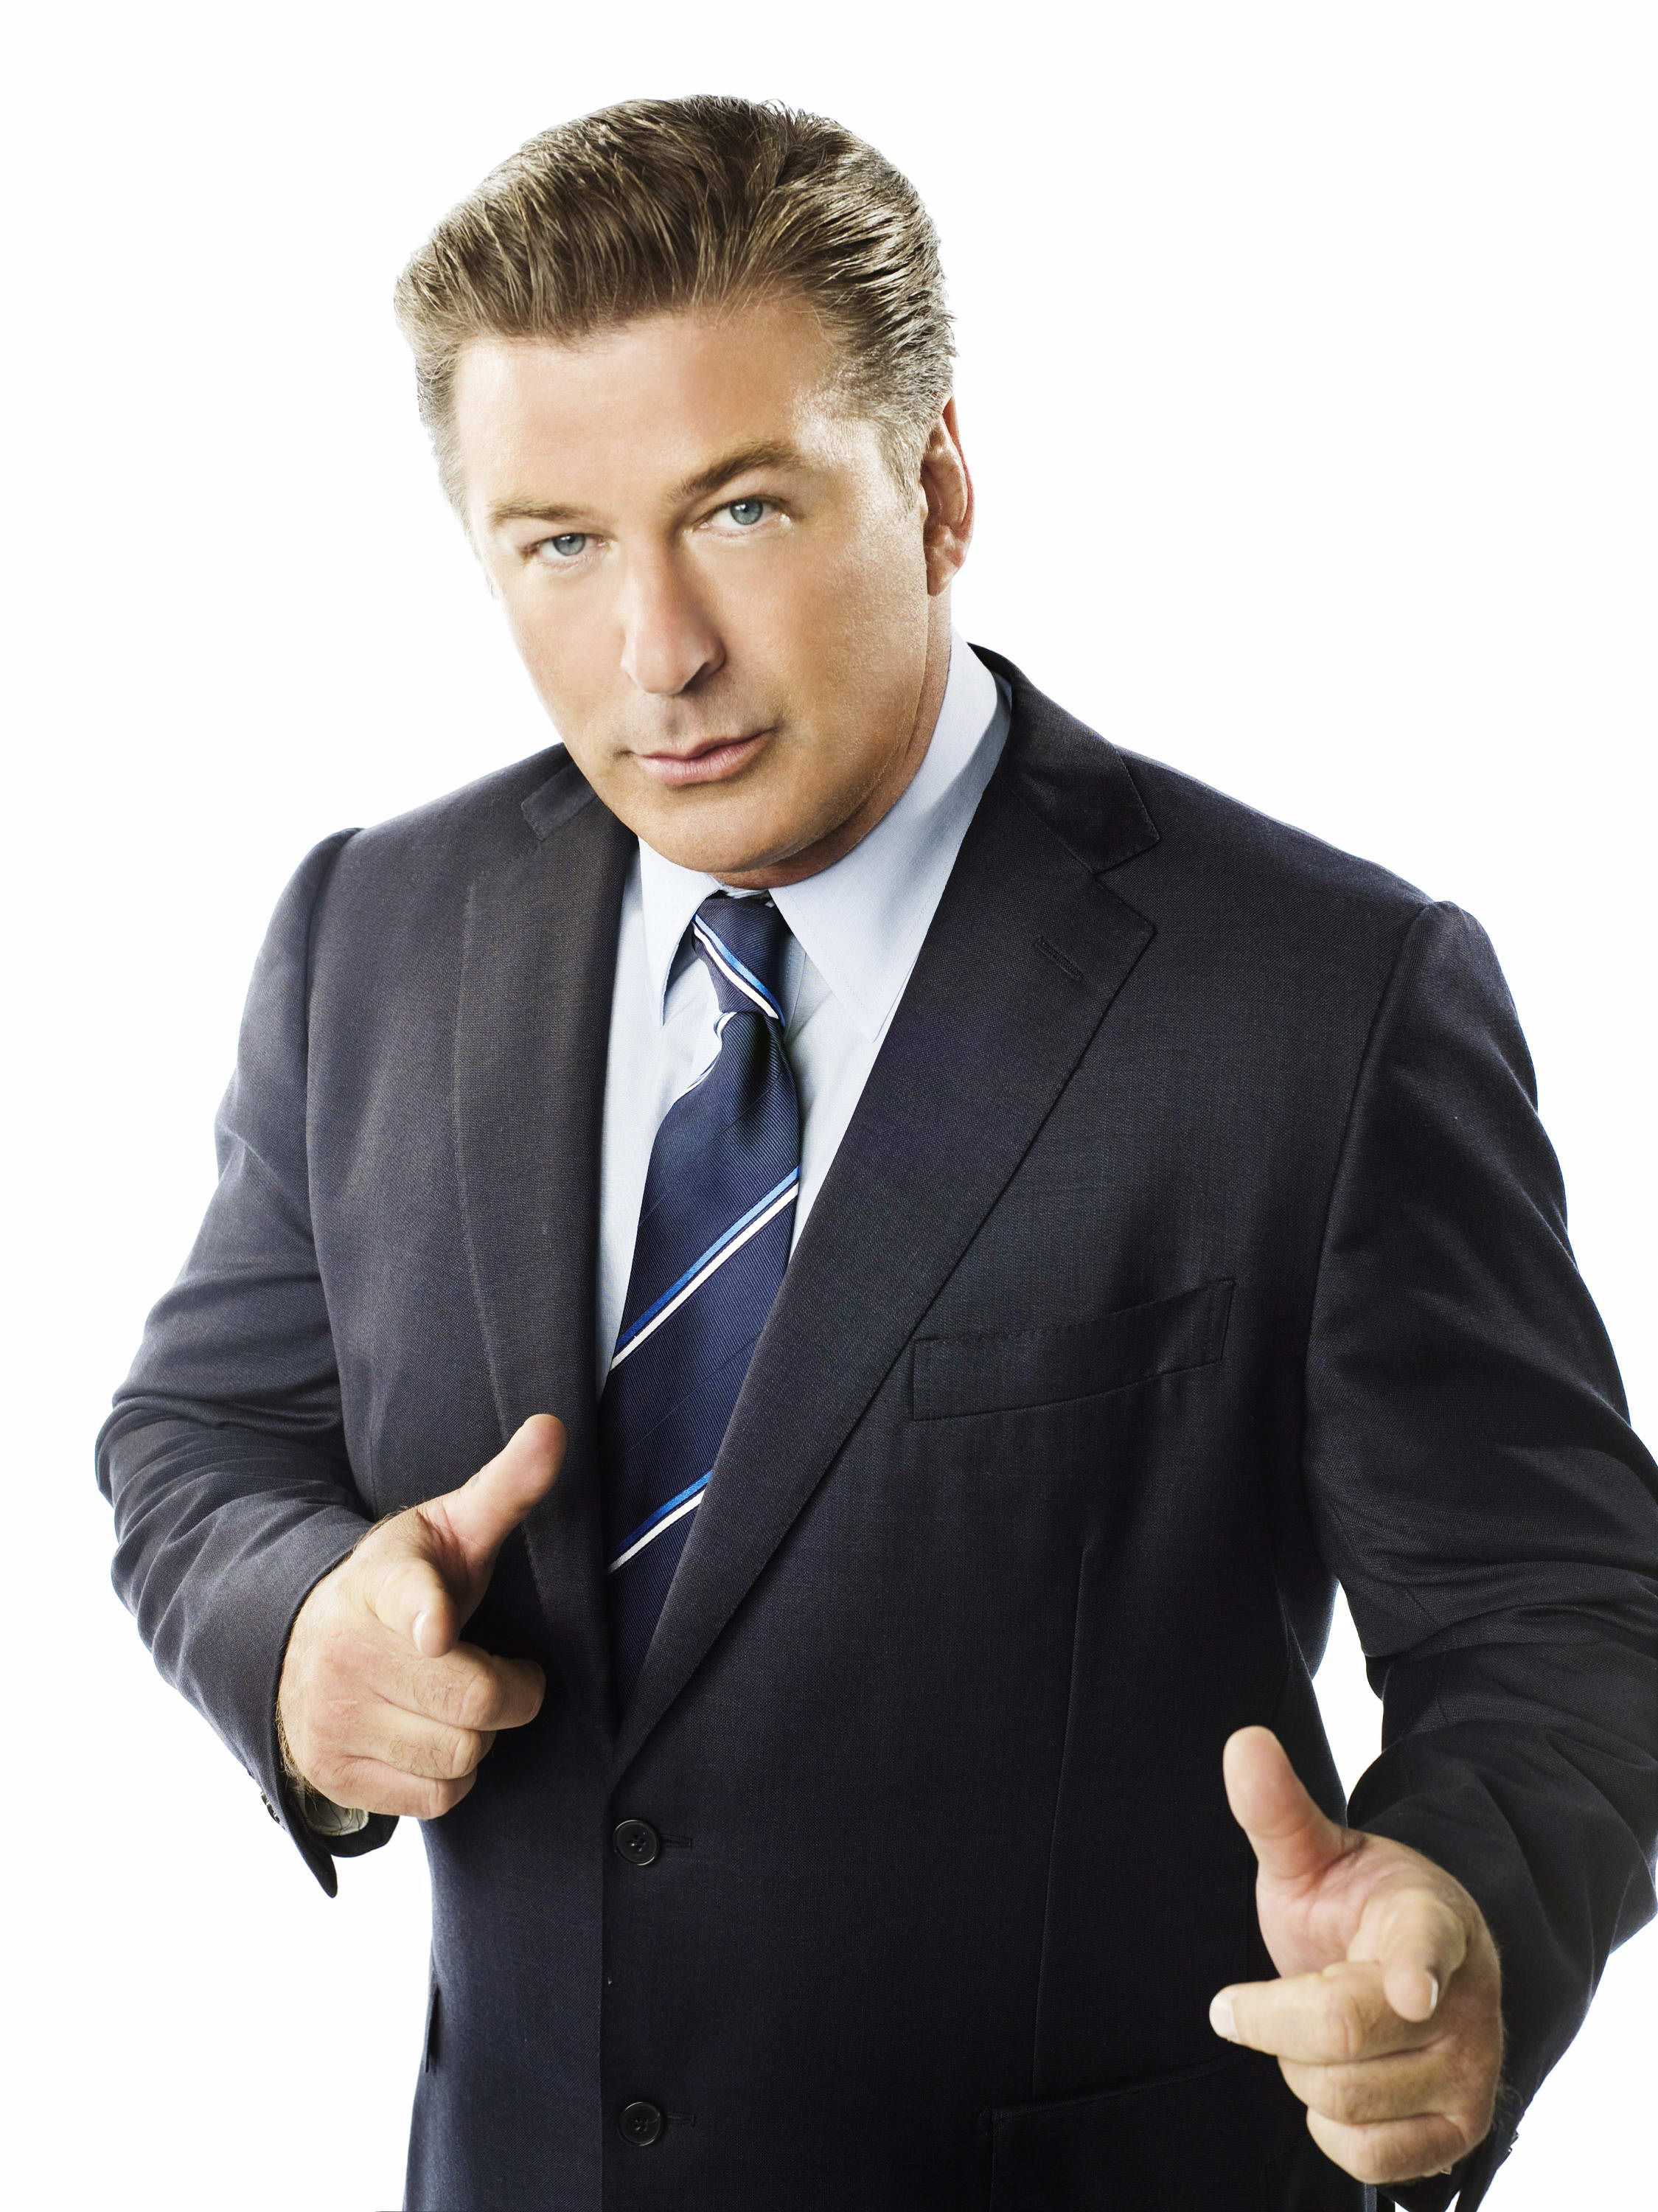 Alec Baldwin to narrate documentary on Michigan's toxic water disaster